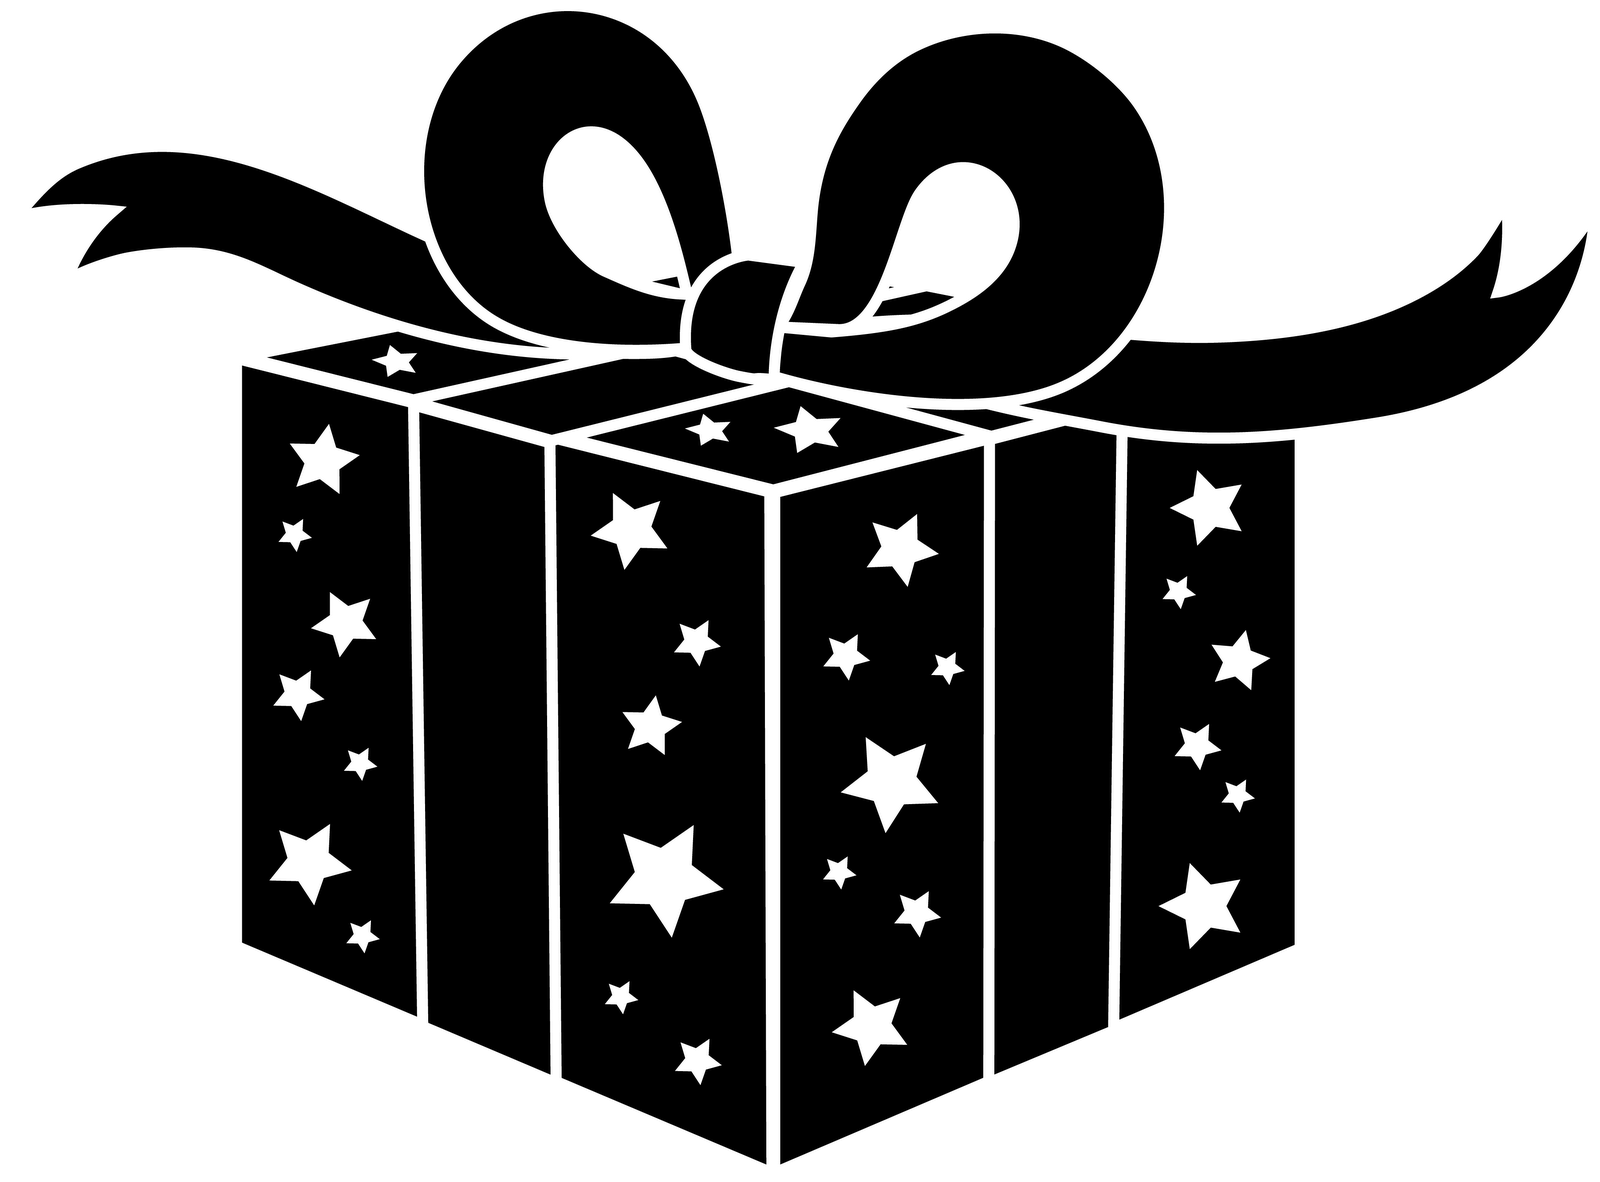 Silhouette christmas package clipground. Narwhal clipart black and white